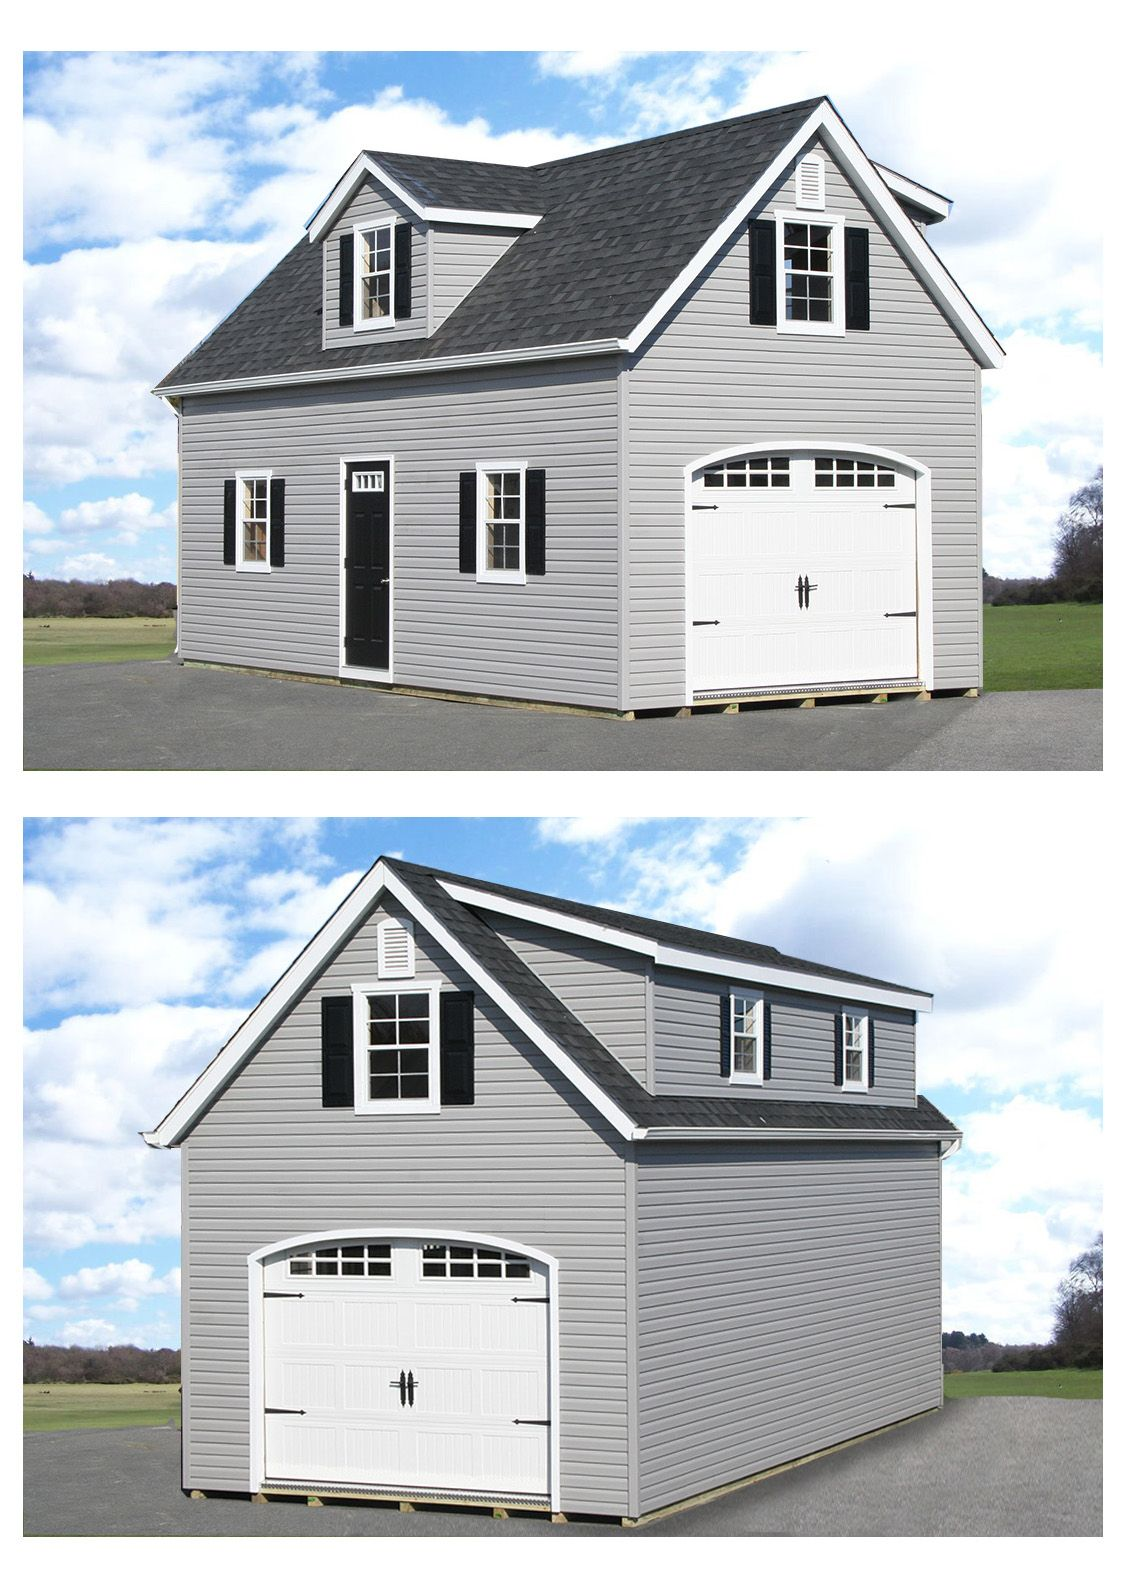 garage plans craftsman style one car two story garage with add dormers to your 2 story garage not only looks great but adds a